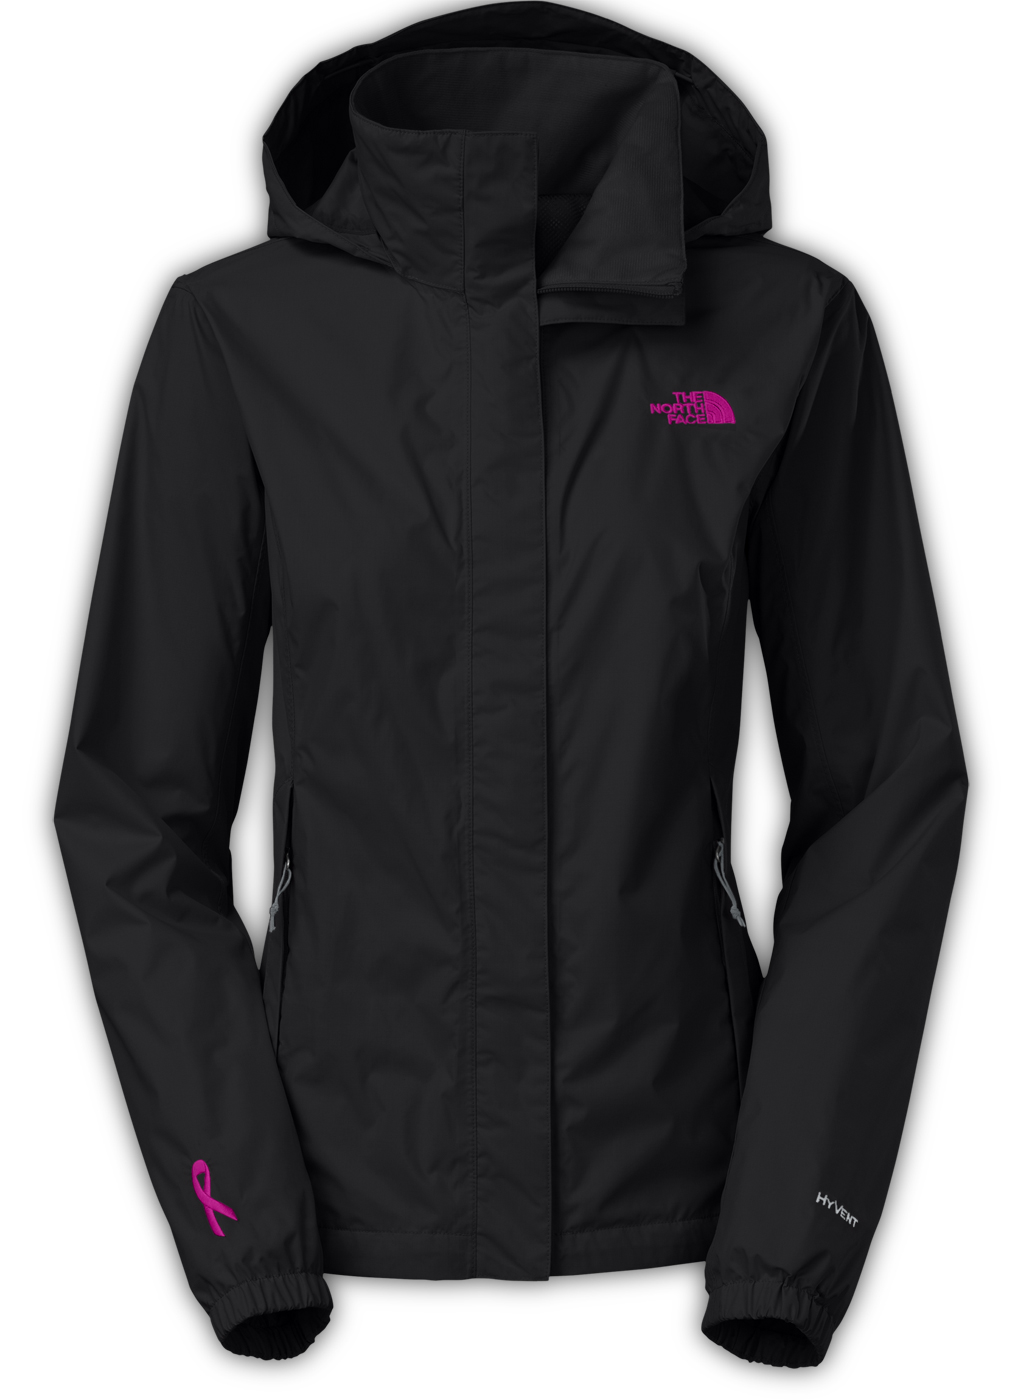 The North Face Zip Hoodie